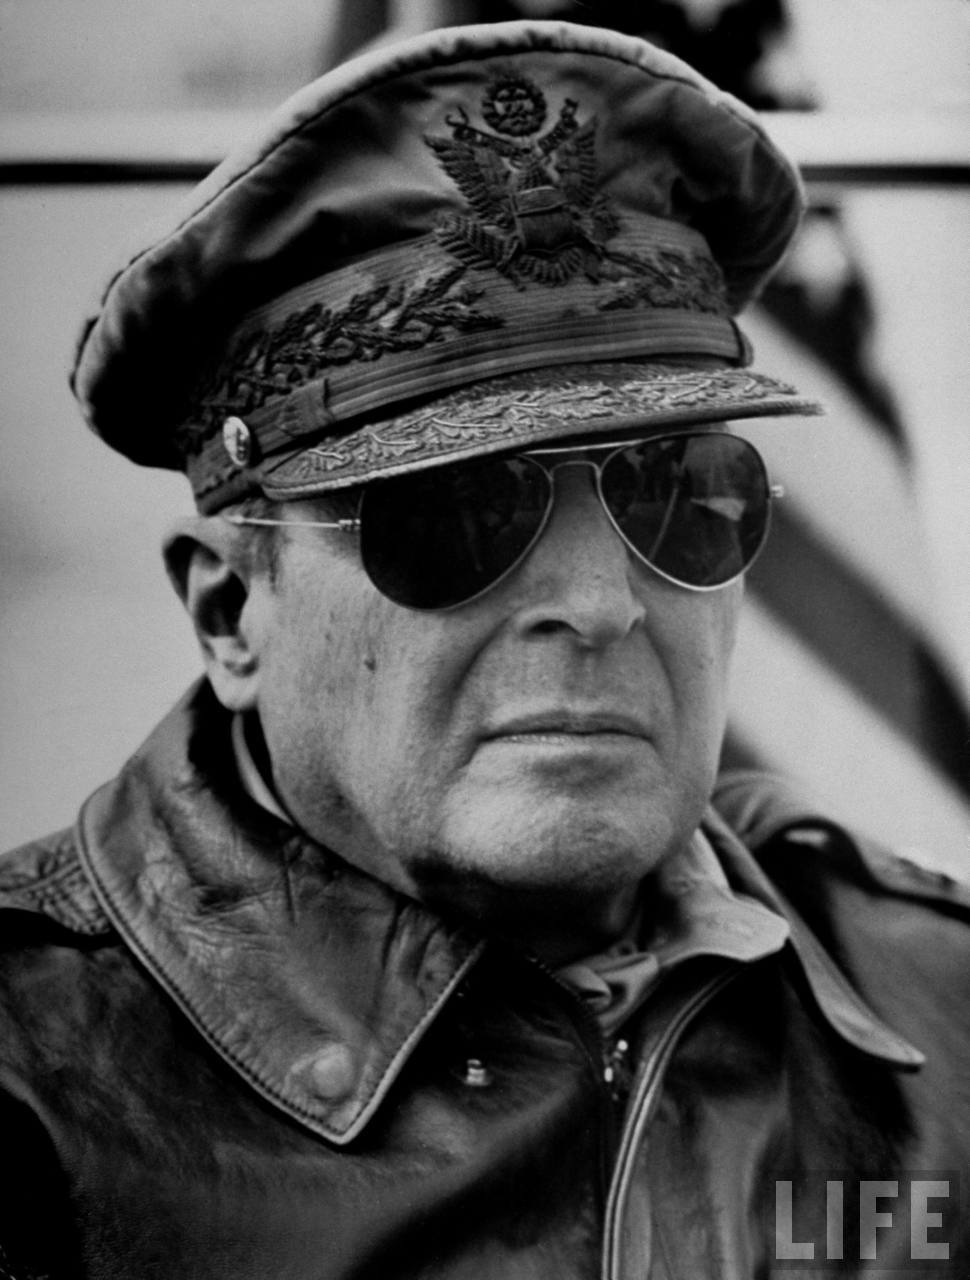 General Douglas MacArthur in AN6531 Sunglasses and A2 aviator jacket.   Photo from Life magazine.